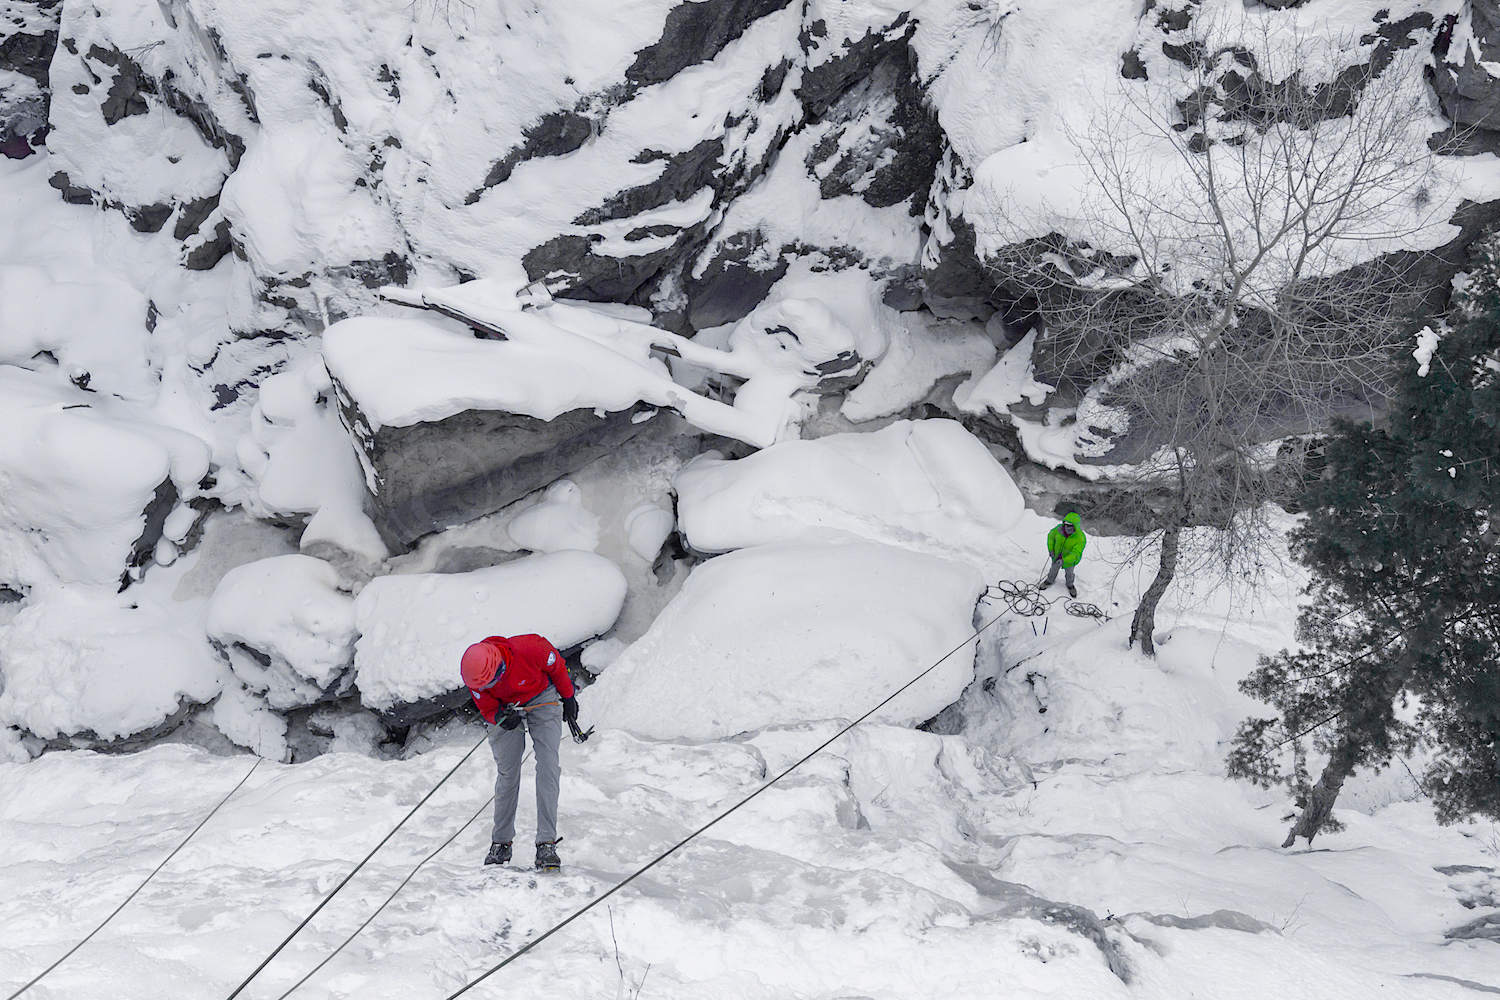 Ouray Ice Park, Image # 4506